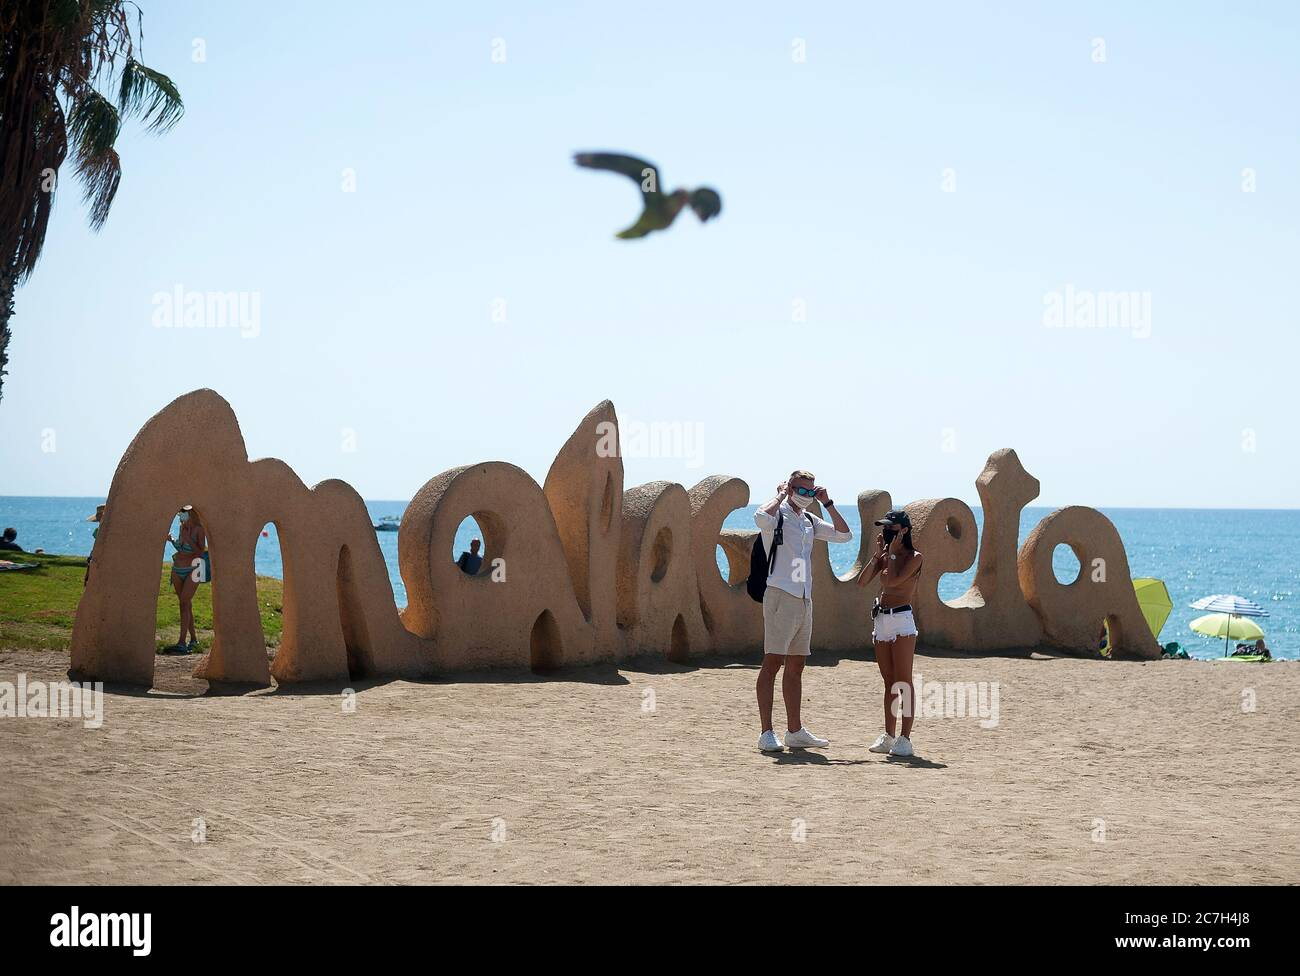 Malaga, Spain. 17th July, 2020. A couple of tourists are seen adjusting their face masks at La Malagueta beach amid coronavirus crisis.The appearance of new coronavirus (COVID-19) outbreak in Spain after easing of restrictions has caused the regional government to impose the obligatory use of face masks in outdoors places even when they observe a safe distance between people. This measure tries to curb the spread of coronavirus pandemic. Credit: SOPA Images Limited/Alamy Live News Stock Photo